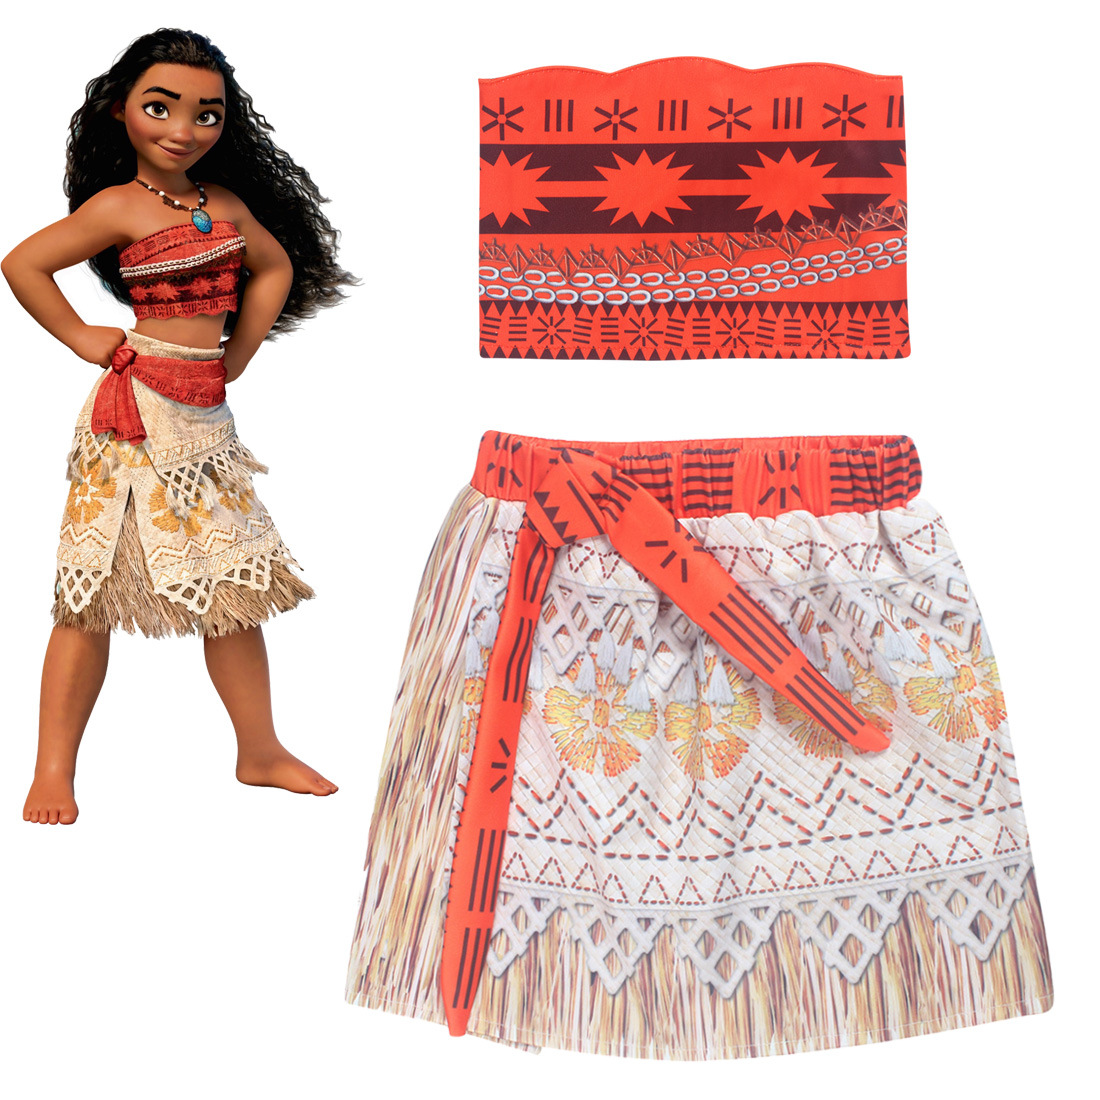 Z&Y 3-8Years Fantasia Moana Dress Costume Girls Dress Set Carnival Costume Kids Clothes A-line Dresses Girl Kerst Jurk Meisje